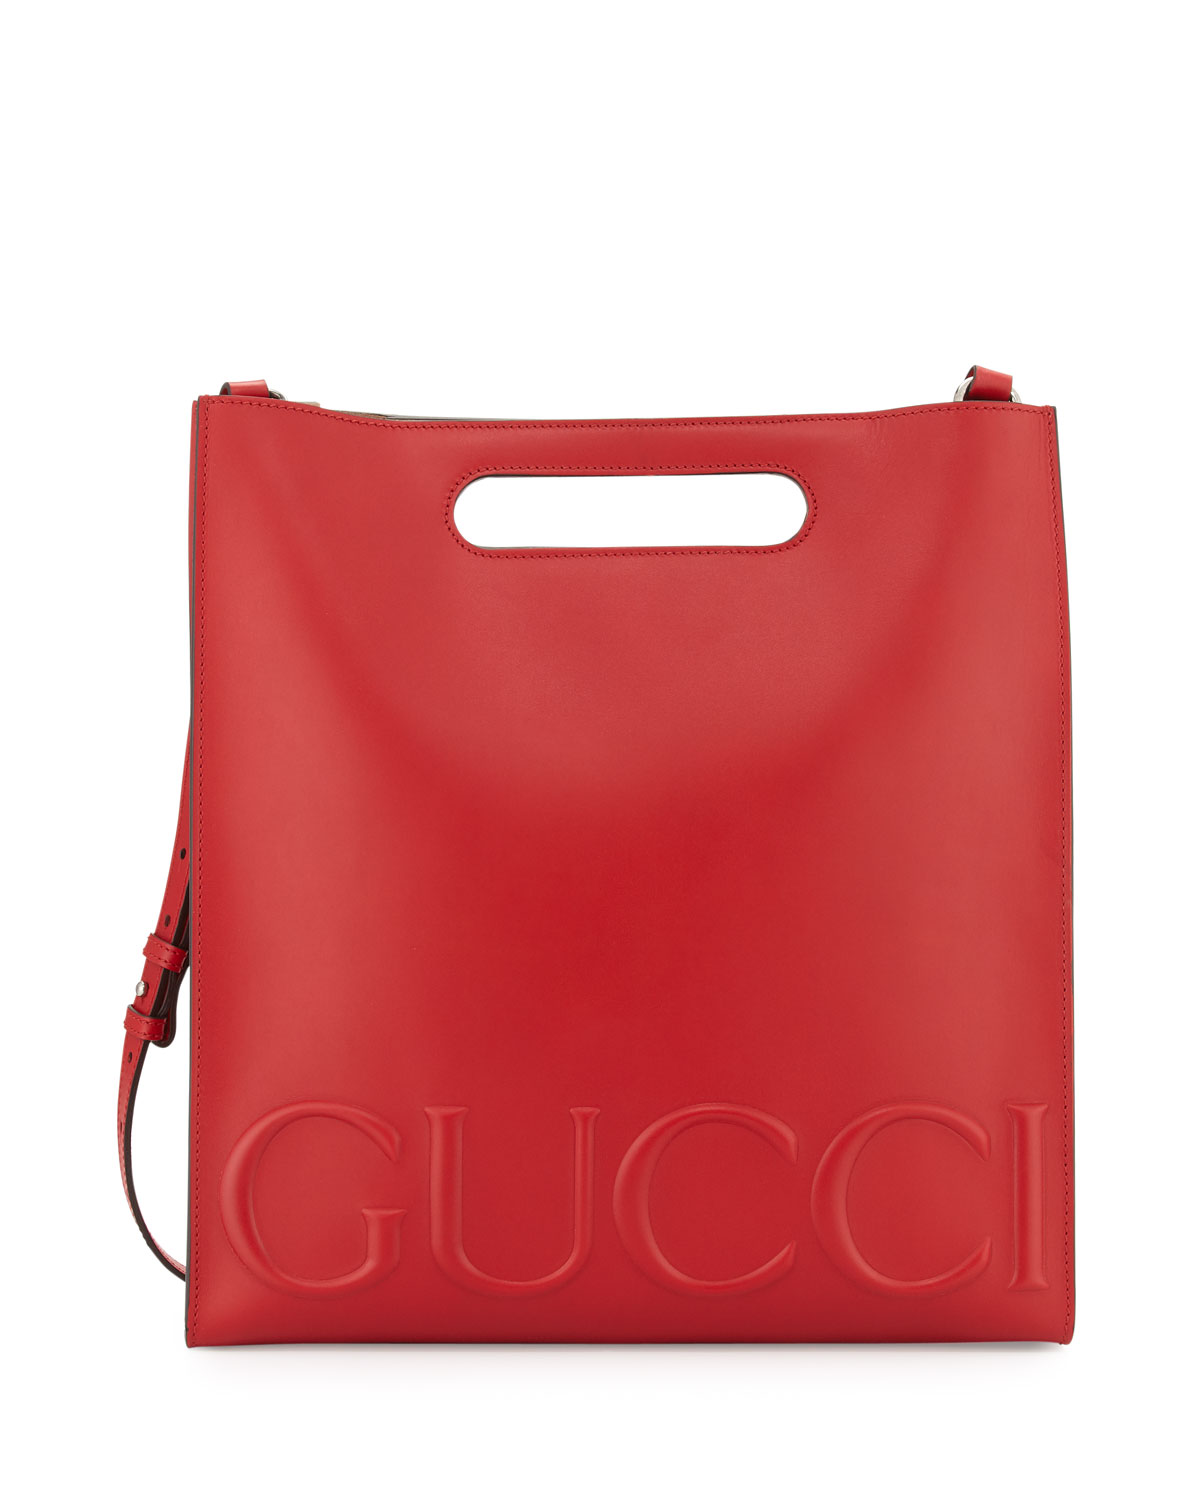 75a86639a1d5c4 Gucci Linea Gucci XL Leather Tote Bag, Red | Neiman Marcus